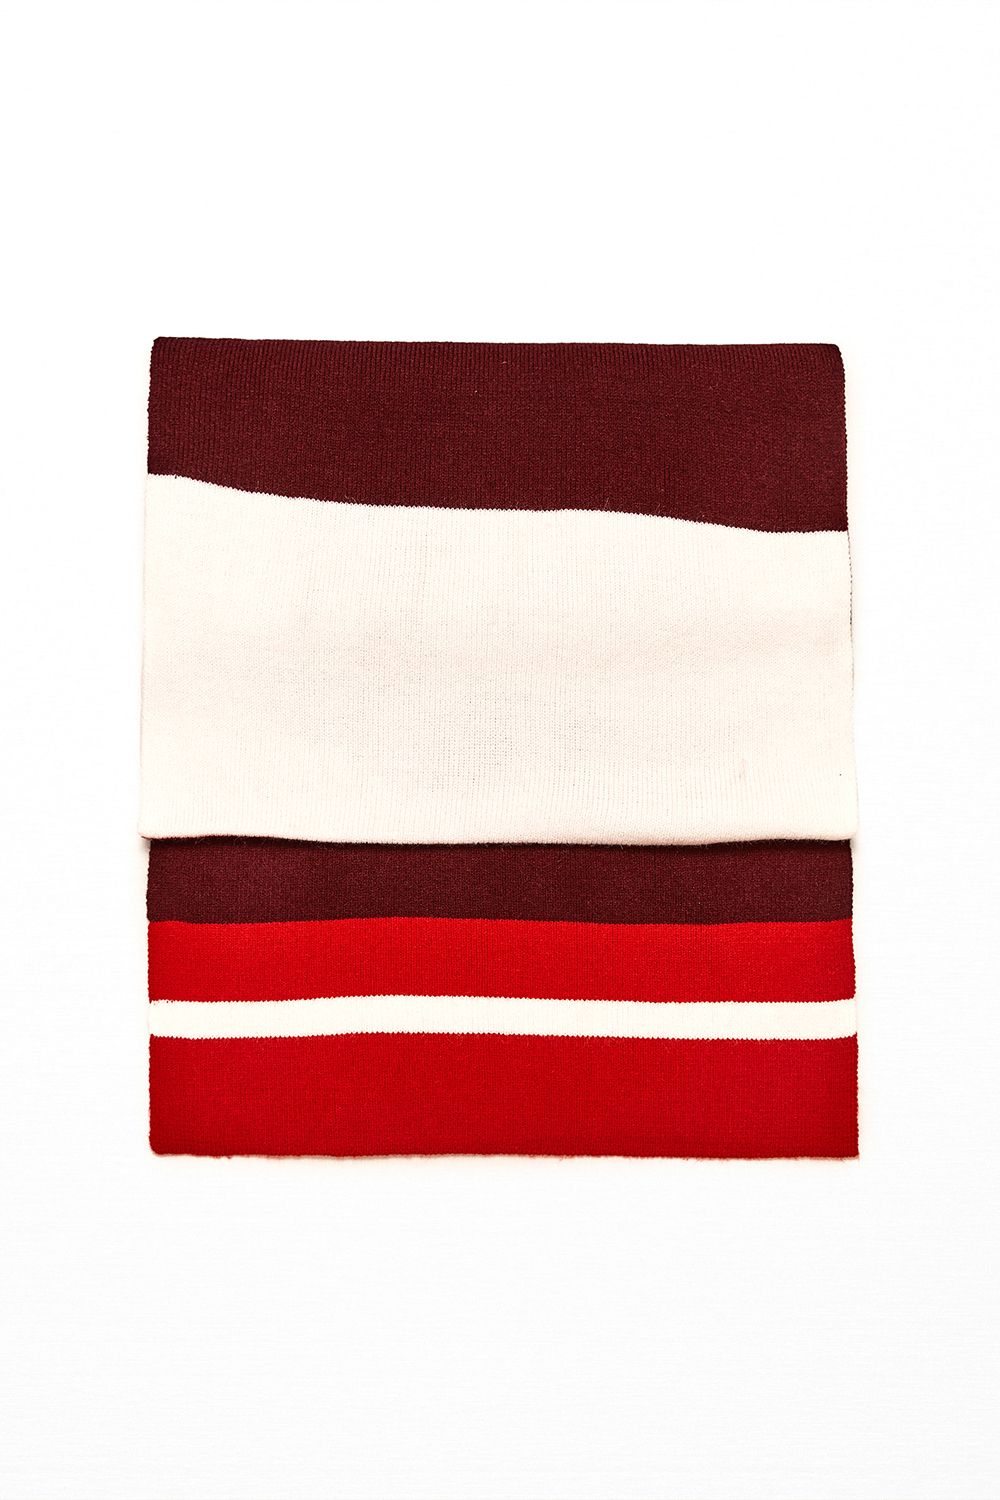 """<p>""""Tommy, Tommy, kinda.""""  </p><p>$26, <a href=""""http://www.zara.com/us/en/woman/accessories/scarves/college-style-scarf-c271013p3819567.html"""" target=""""_blank"""" data-tracking-id=""""recirc-text-link"""">zara.com</a>.</p>"""